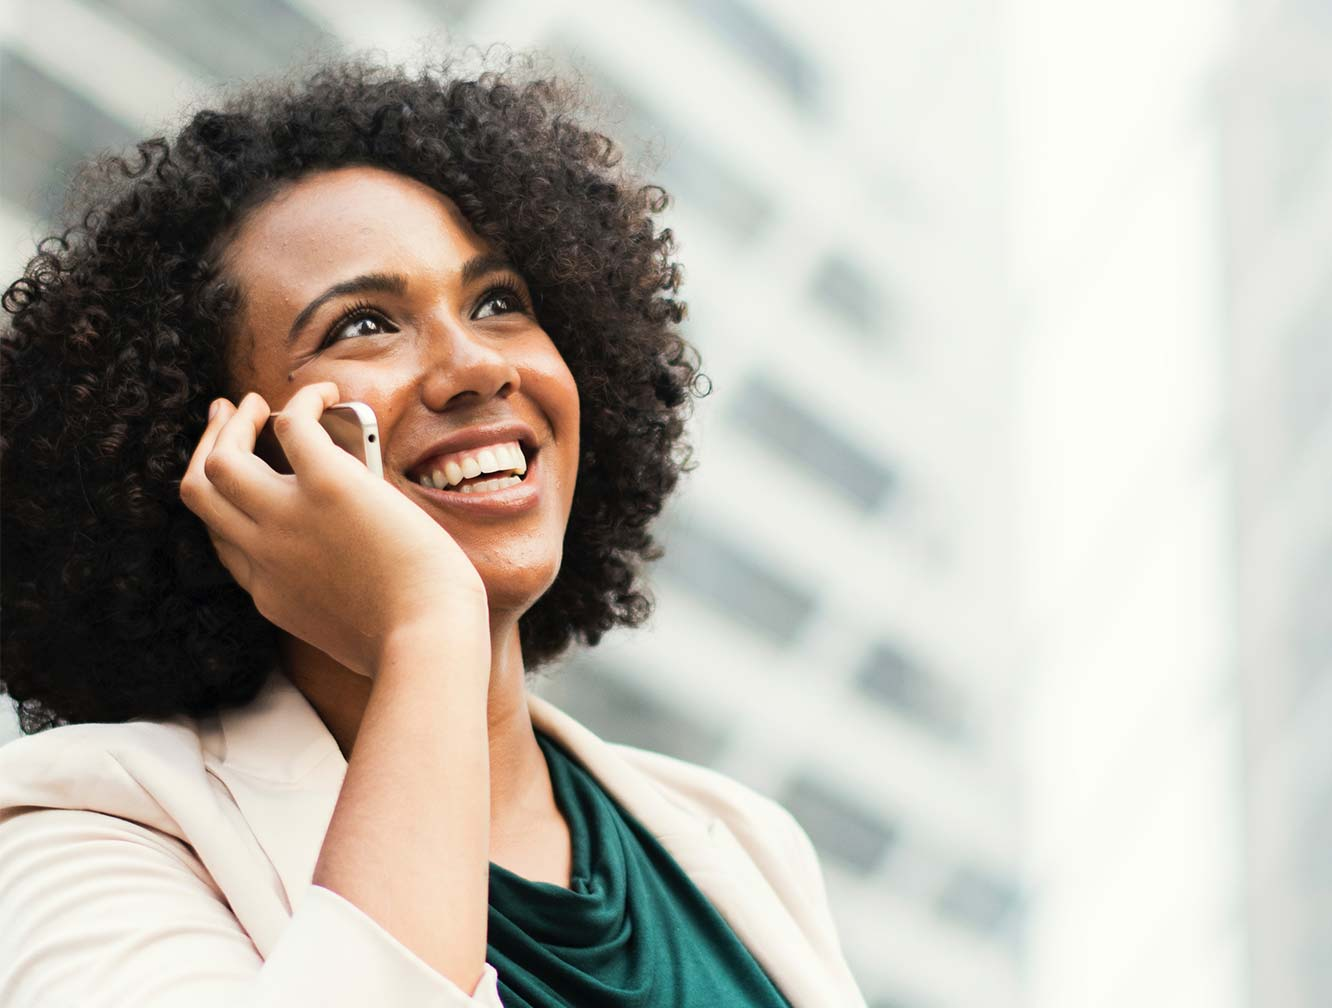 young lady with brown hair on the phone